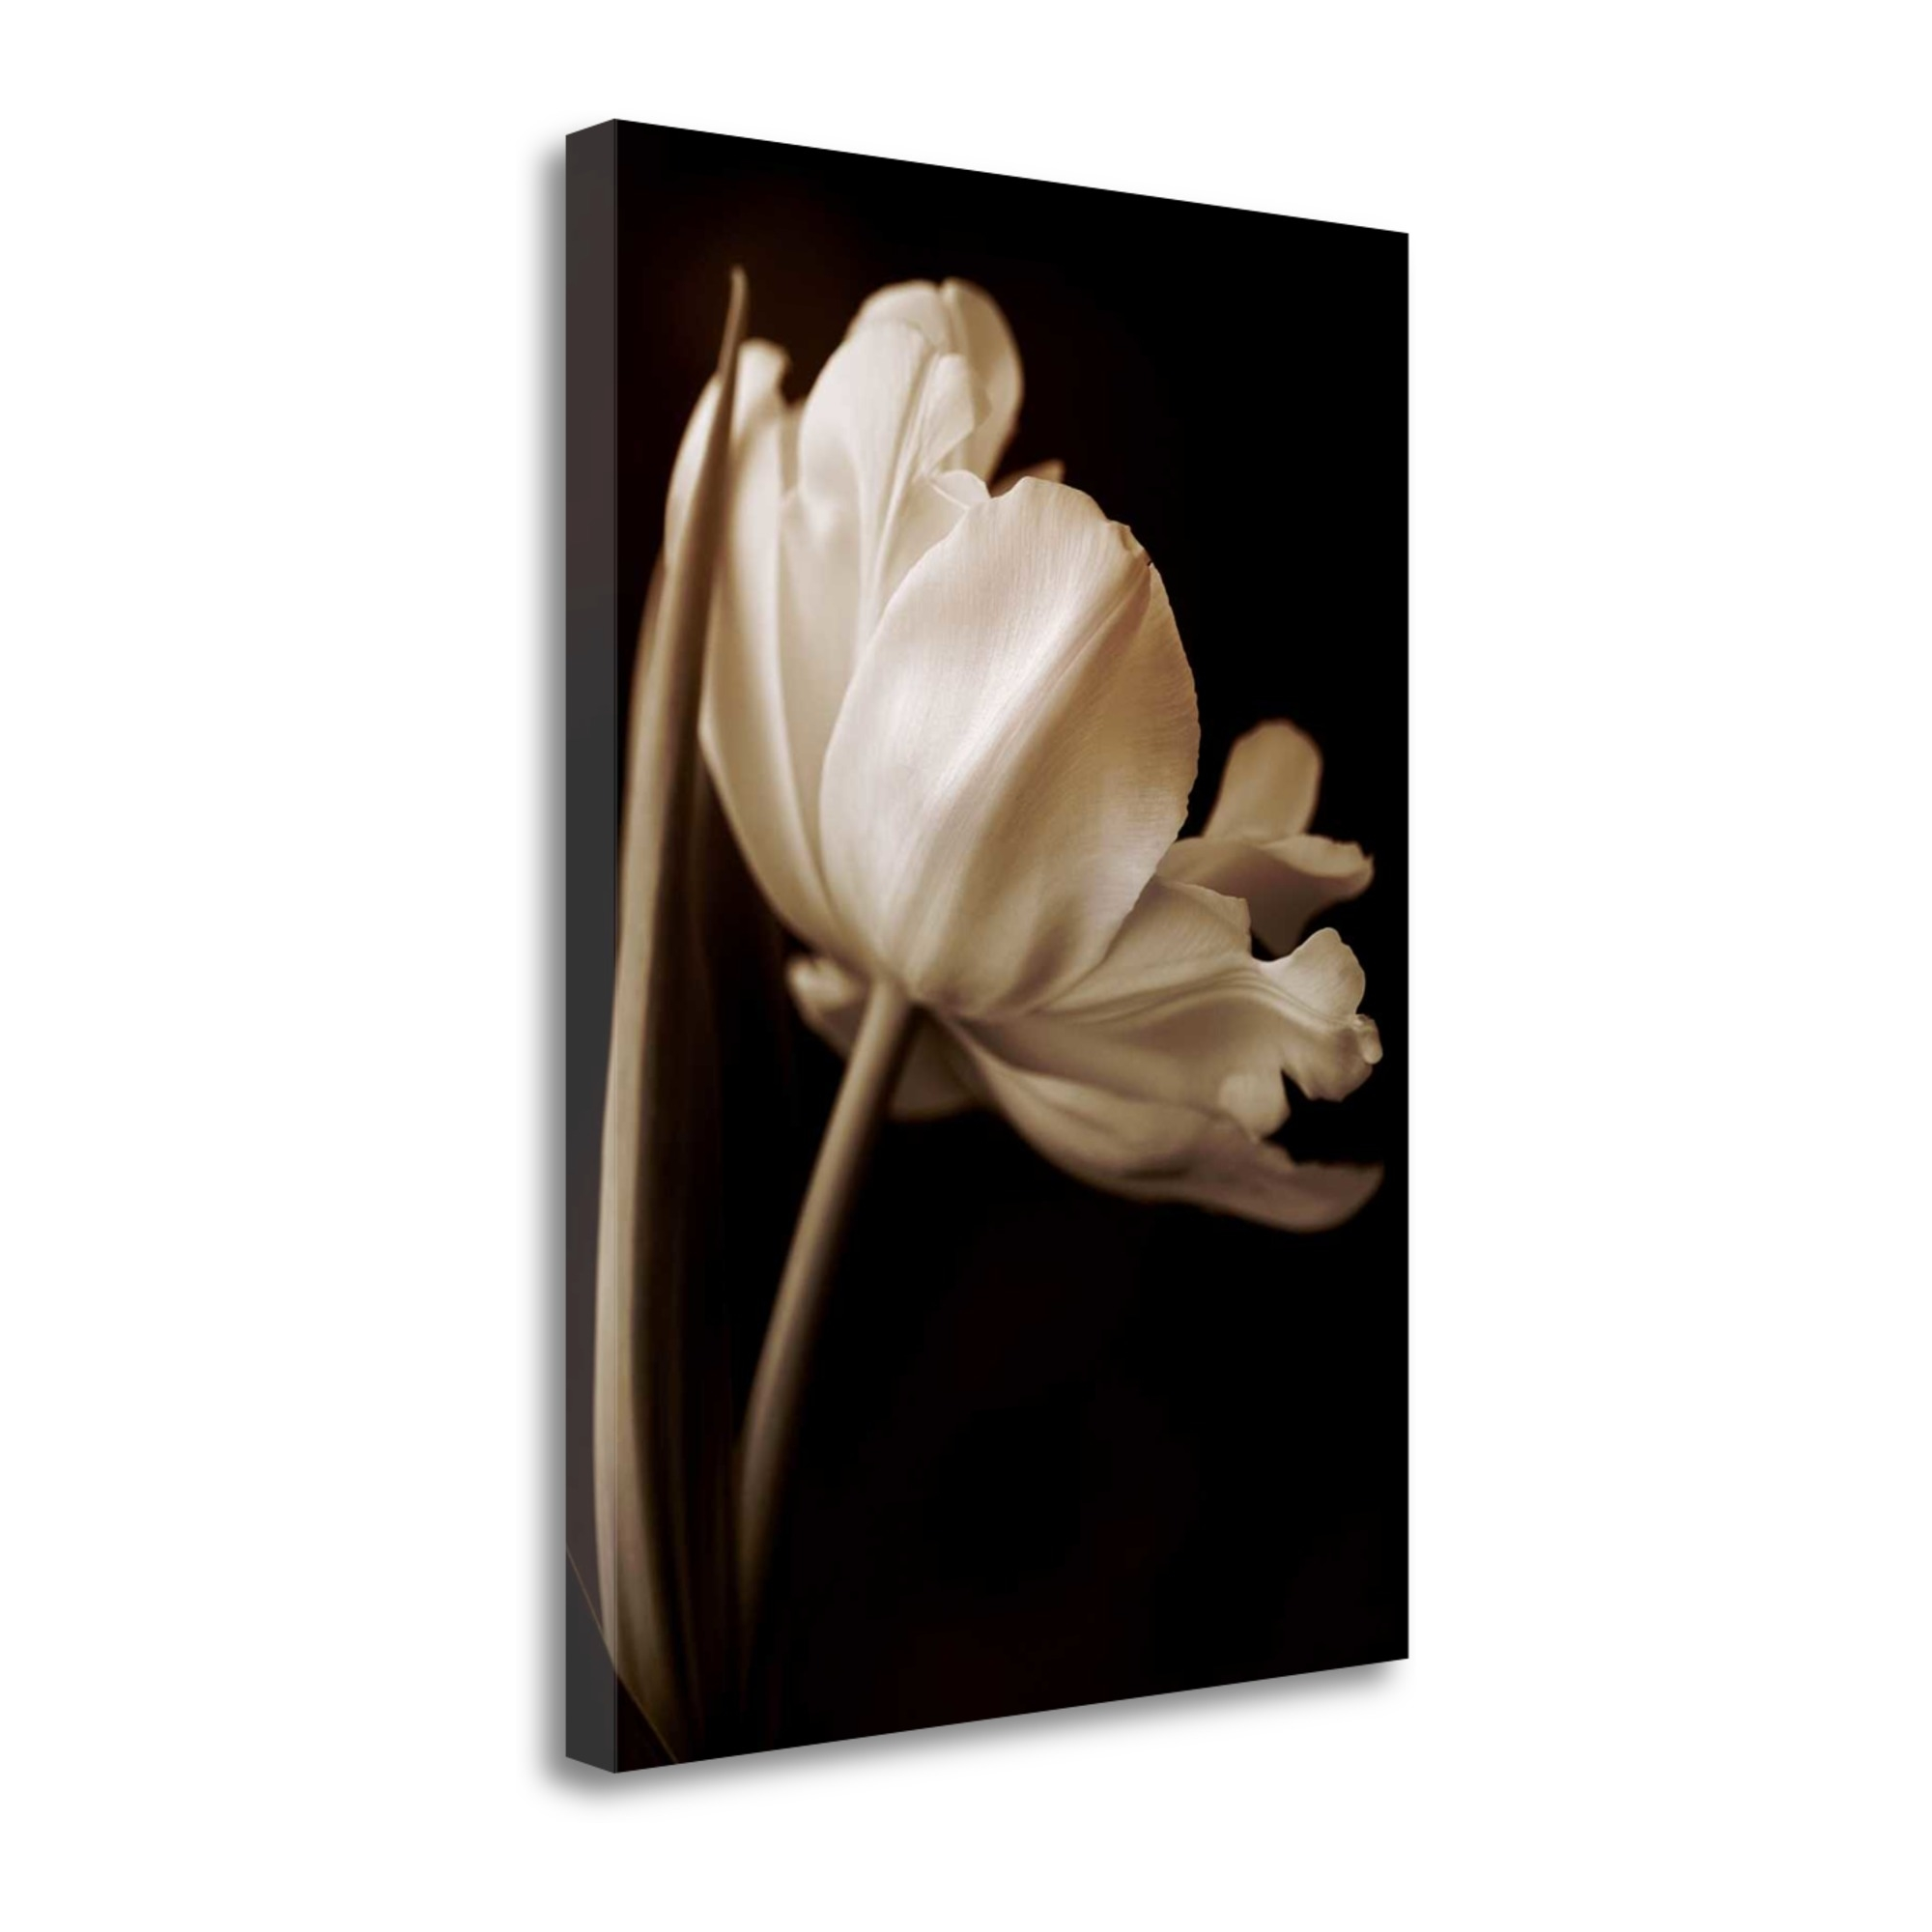 "Champagne Tulip I By Charles Britt, 35"" x 47\"" Fine Art Giclee Print on Gallery Wrap Canvas, Ready to Hang"